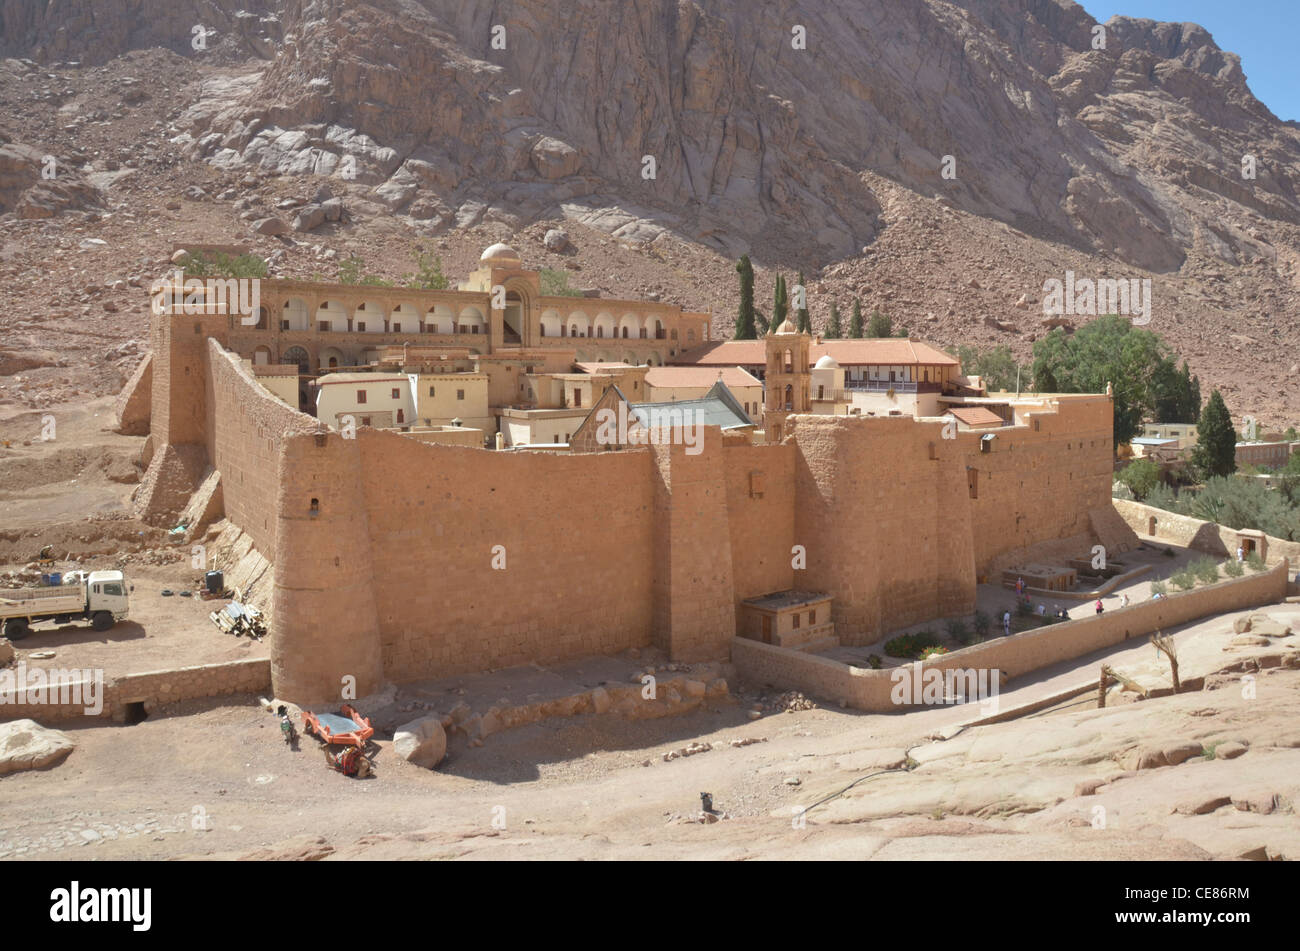 The Greek Orthodox Monastery at Saint Catherine's in the Sinai Desert, existing in the south central Sinai for - Stock Image